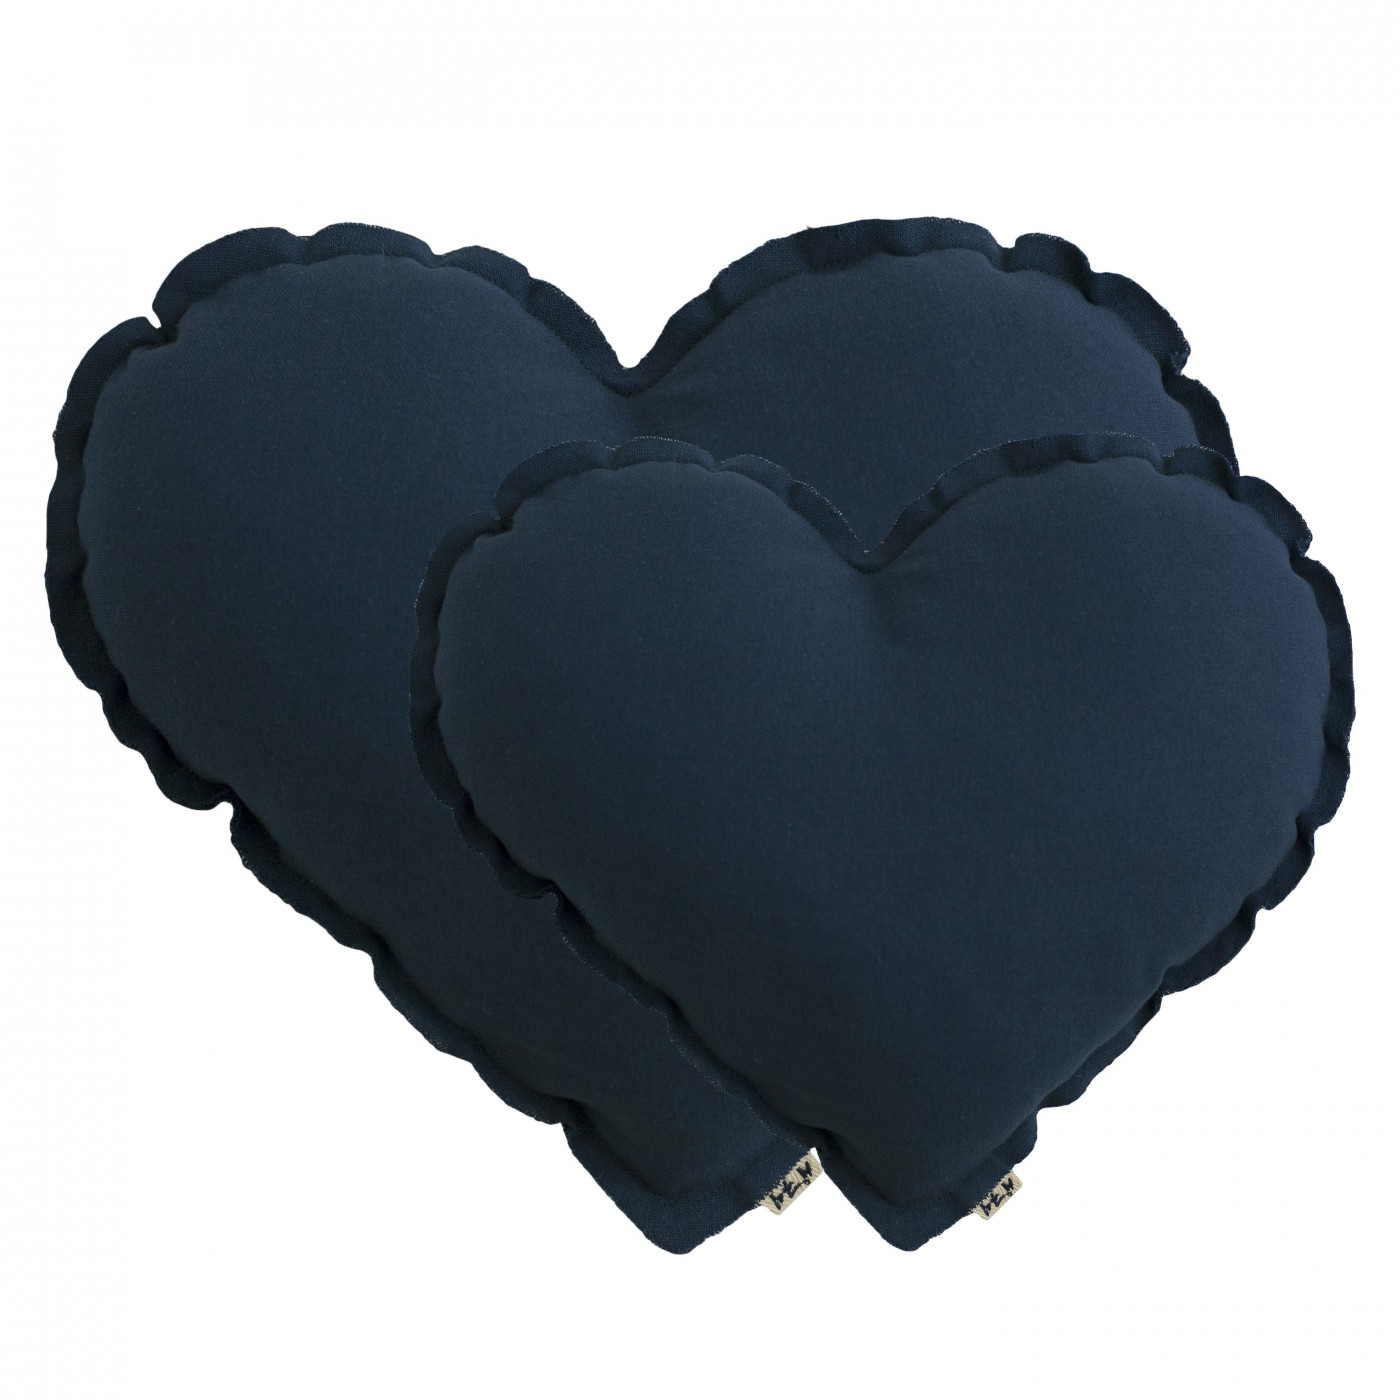 grand coussin coeur bleu nuit yadayada. Black Bedroom Furniture Sets. Home Design Ideas